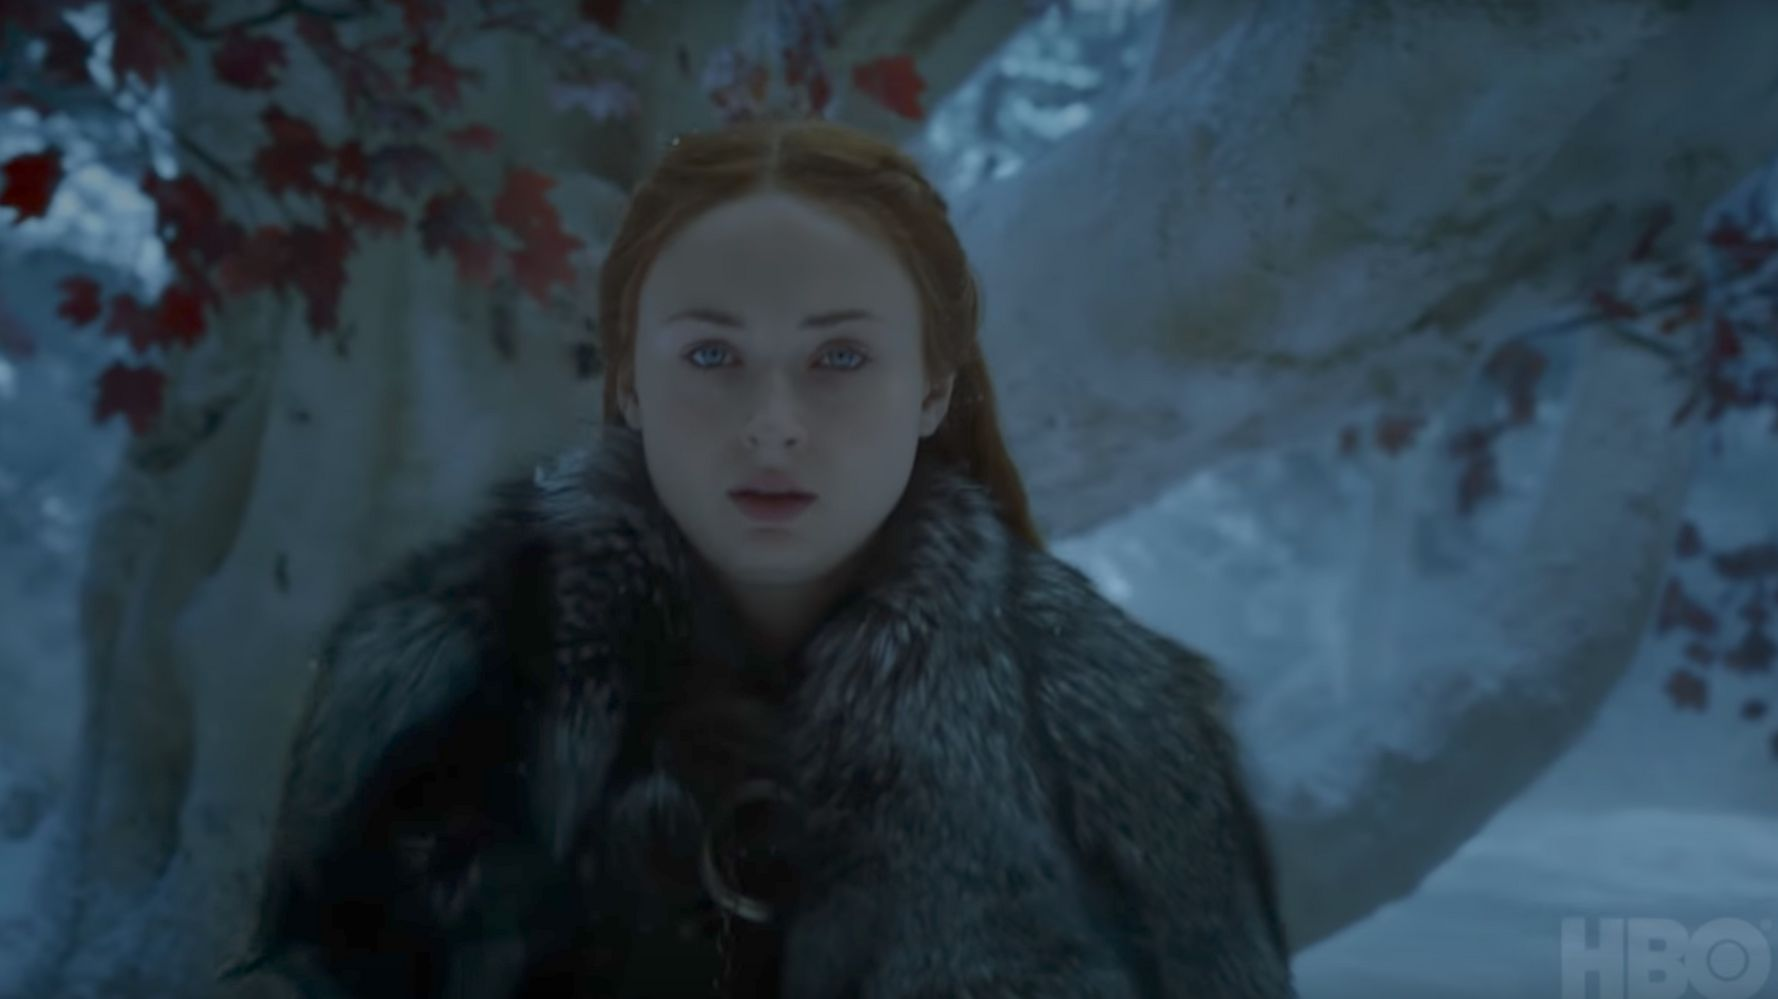 Cryptic Message In 'Game Of Thrones' Trailer May Have Simple